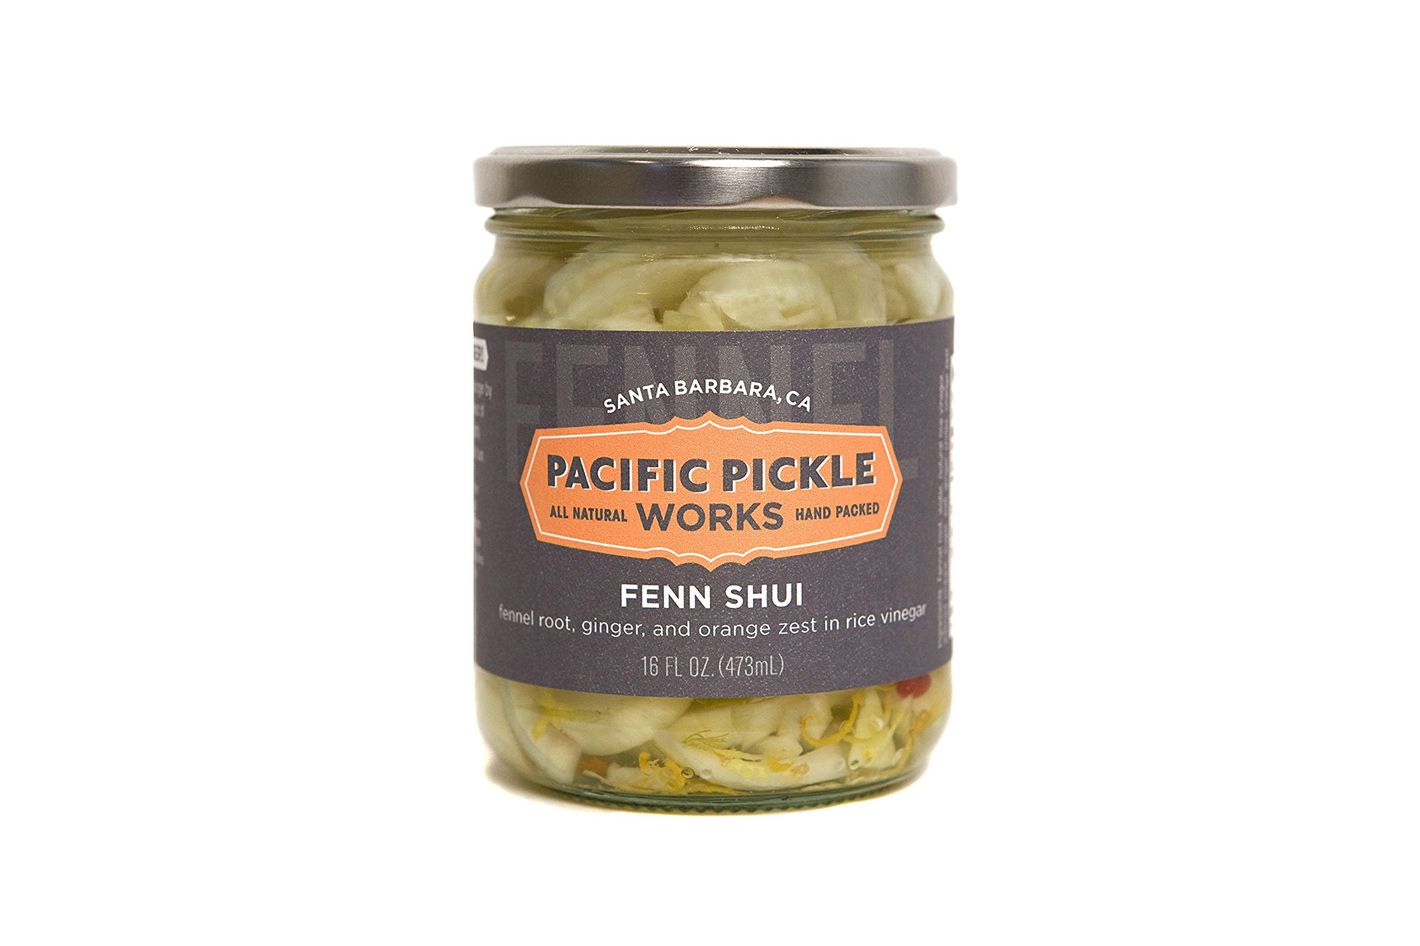 Fenn Shui — Pickled Fennel Root in Rice Vinegar, Ginger, Thai Chile